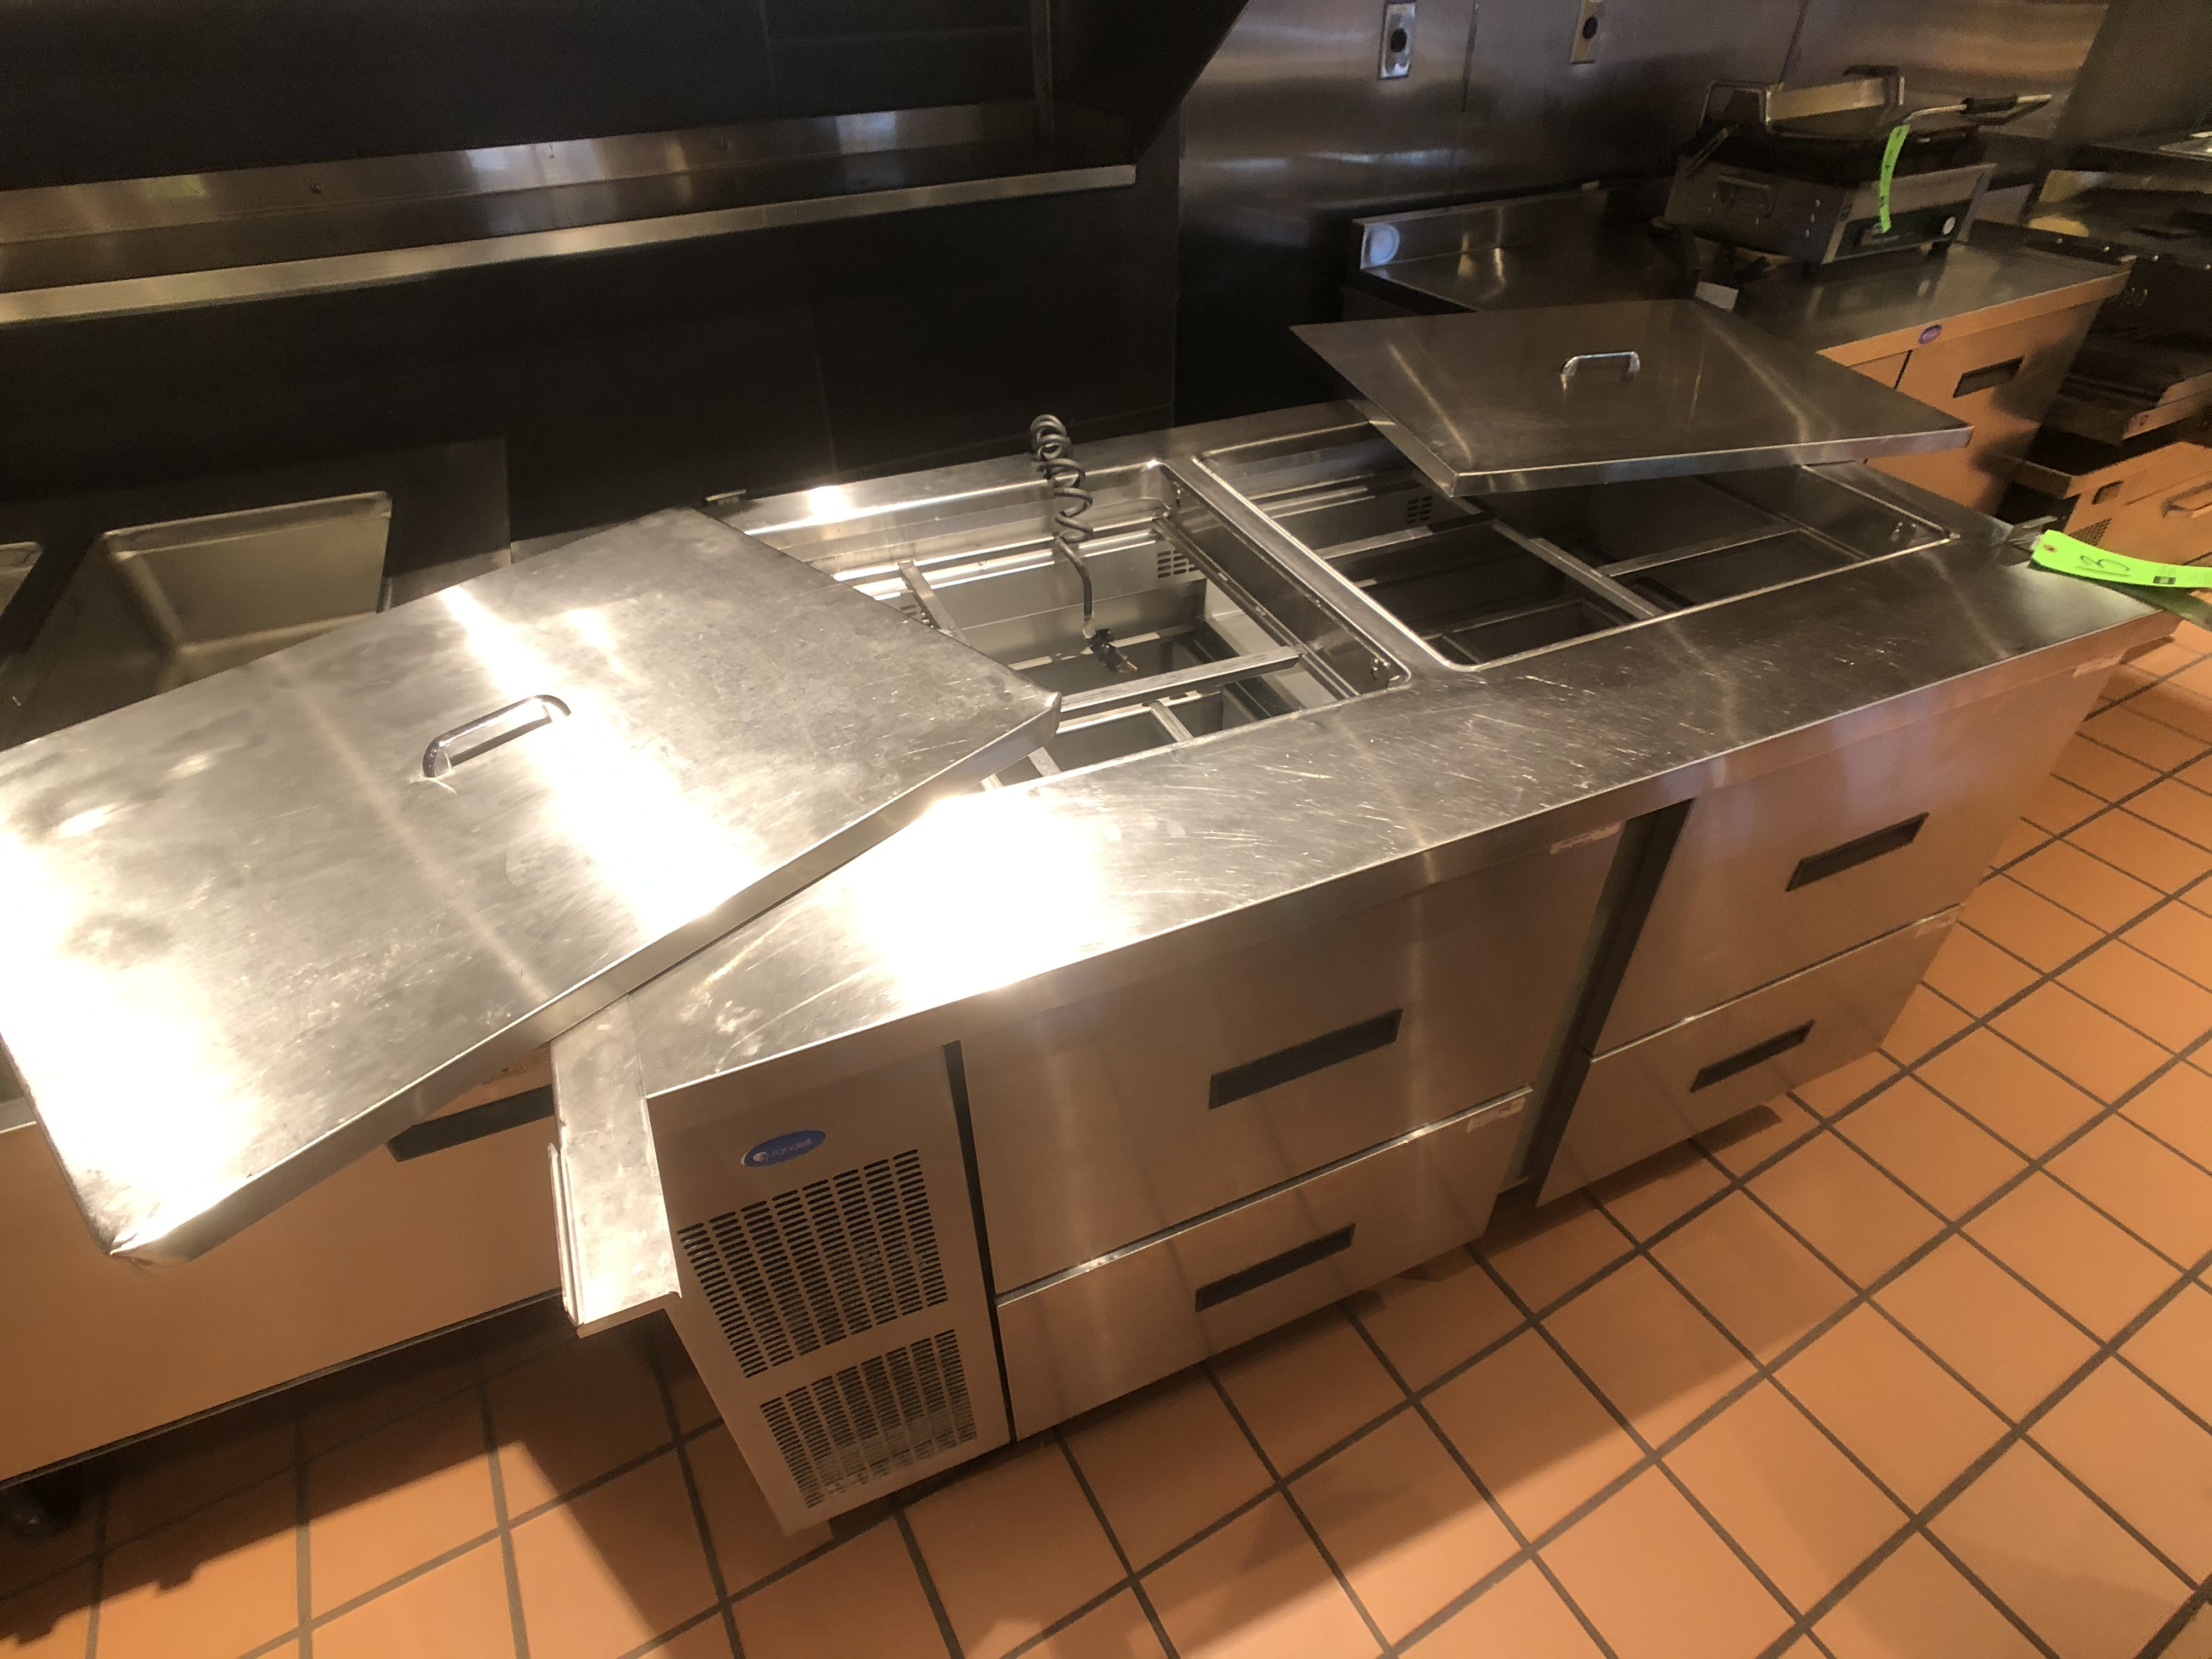 "Randell 60"" Refrigerator / Sandwich Prep Table, Model 9040K-7, S/N W950200-1, (2) Sections, 60"" W - Image 2 of 4"